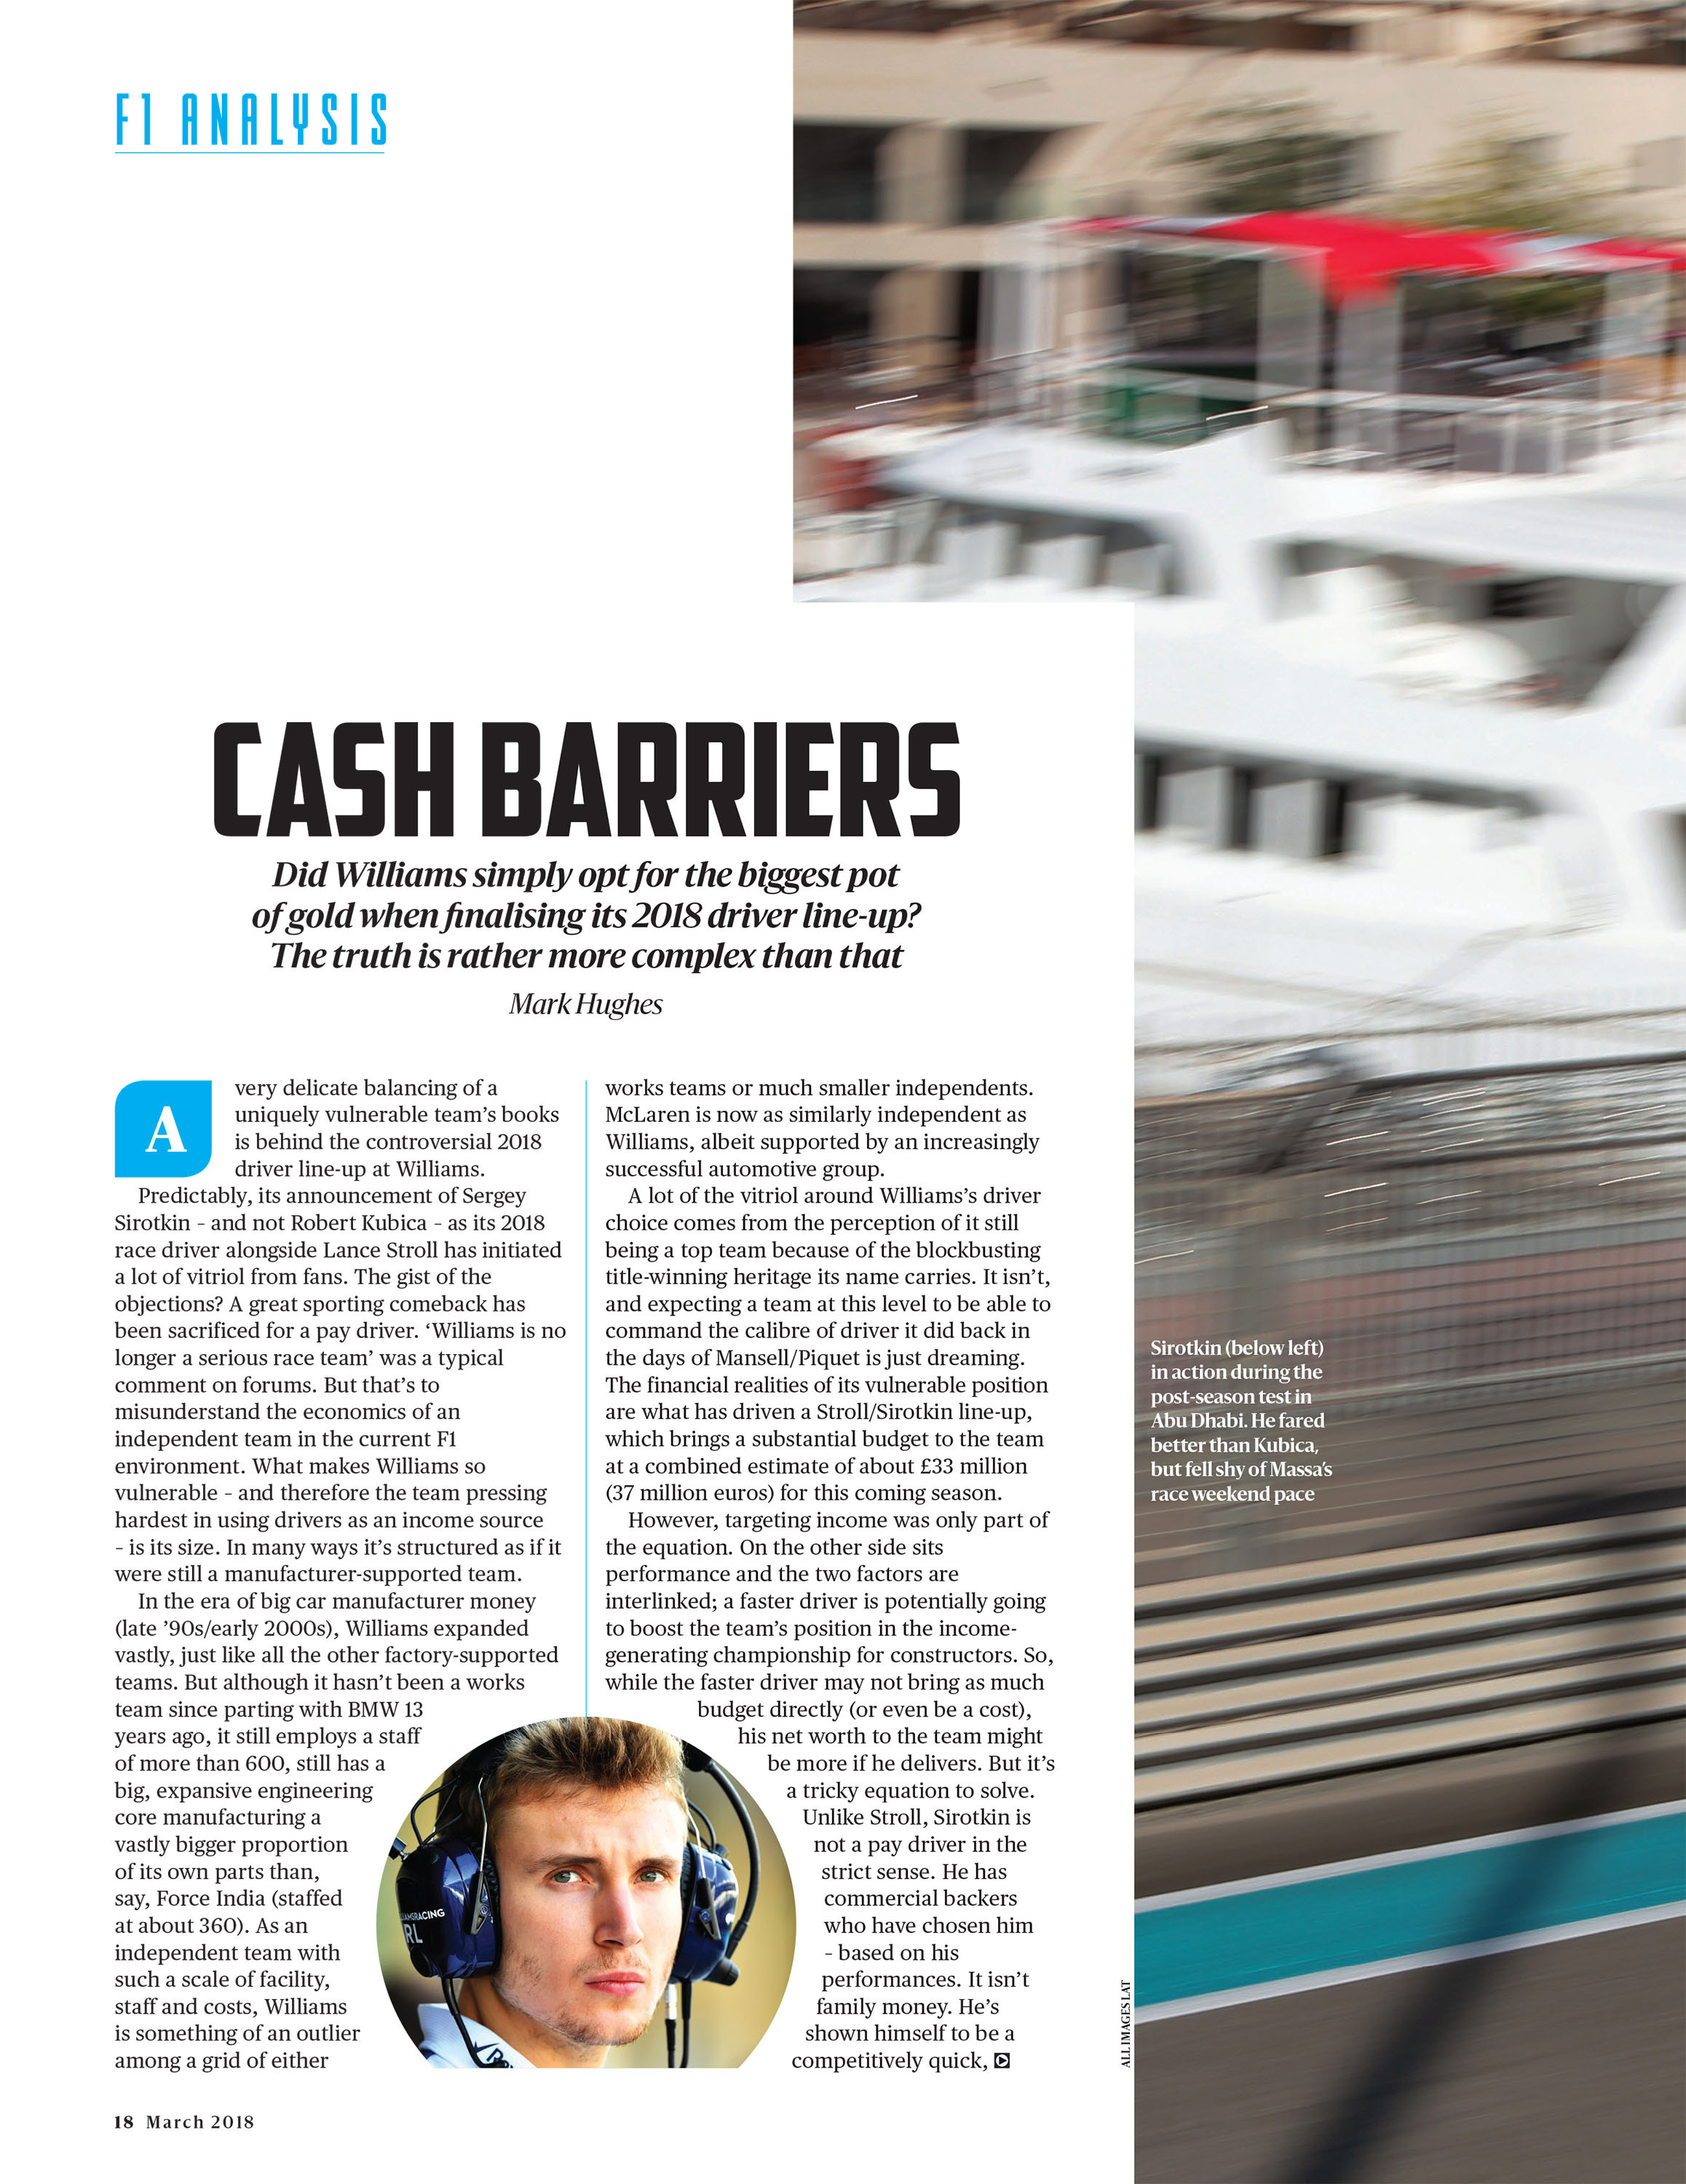 Cash barriers image